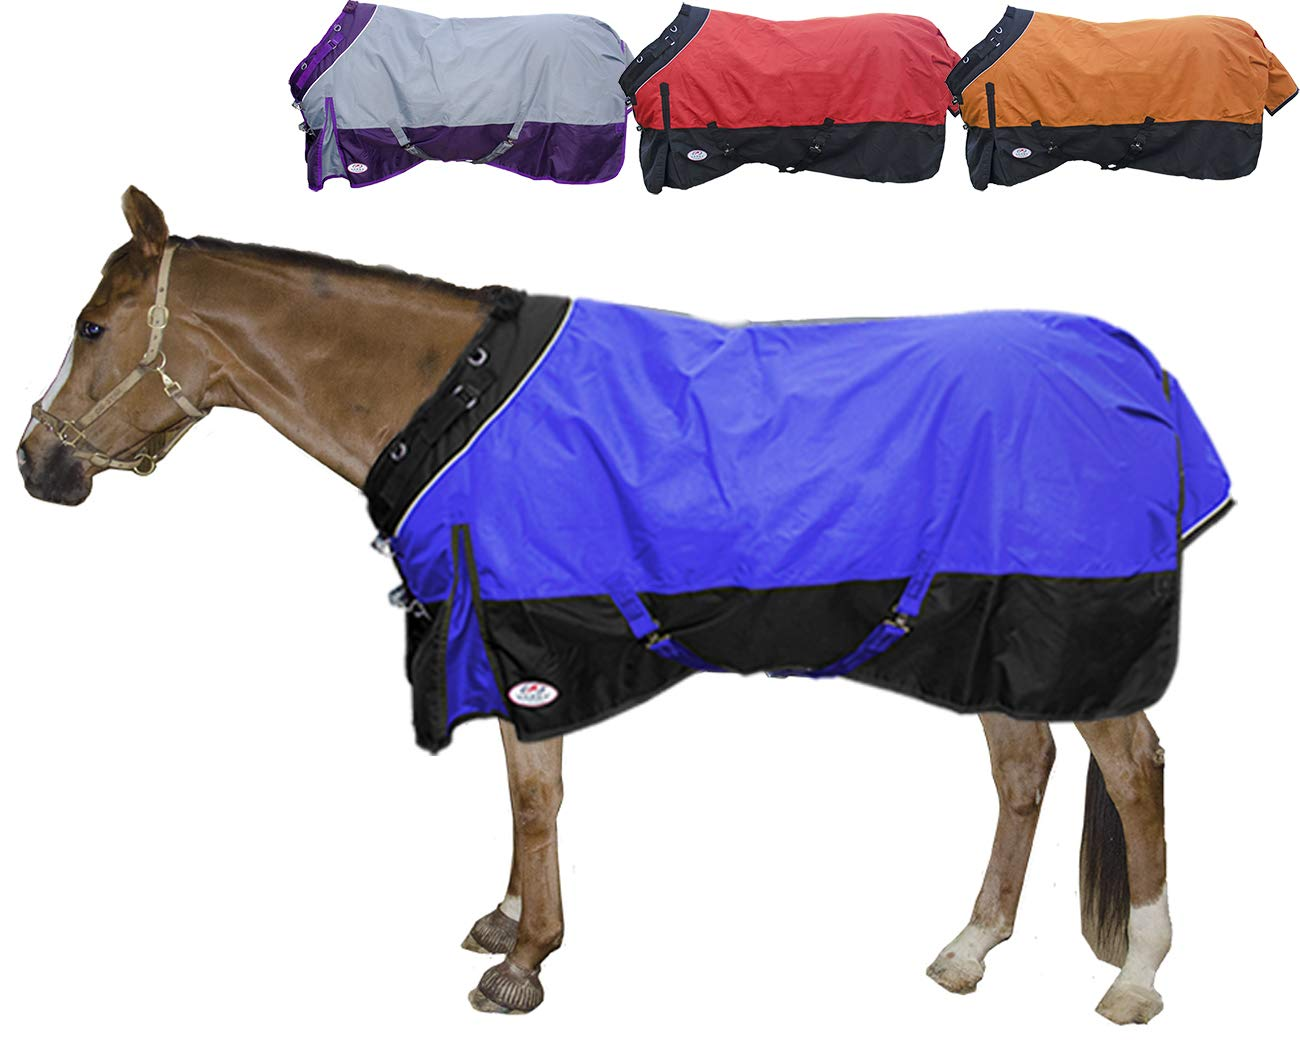 Derby Originals Windstorm Series Reflective Safety 1200D Ripstop Waterproof Nylon Horse Winter Turnout Blanket with 300g Insulation - Two Year Limited Manufacturer's Warranty, Electric Blue/Black by Derby Originals